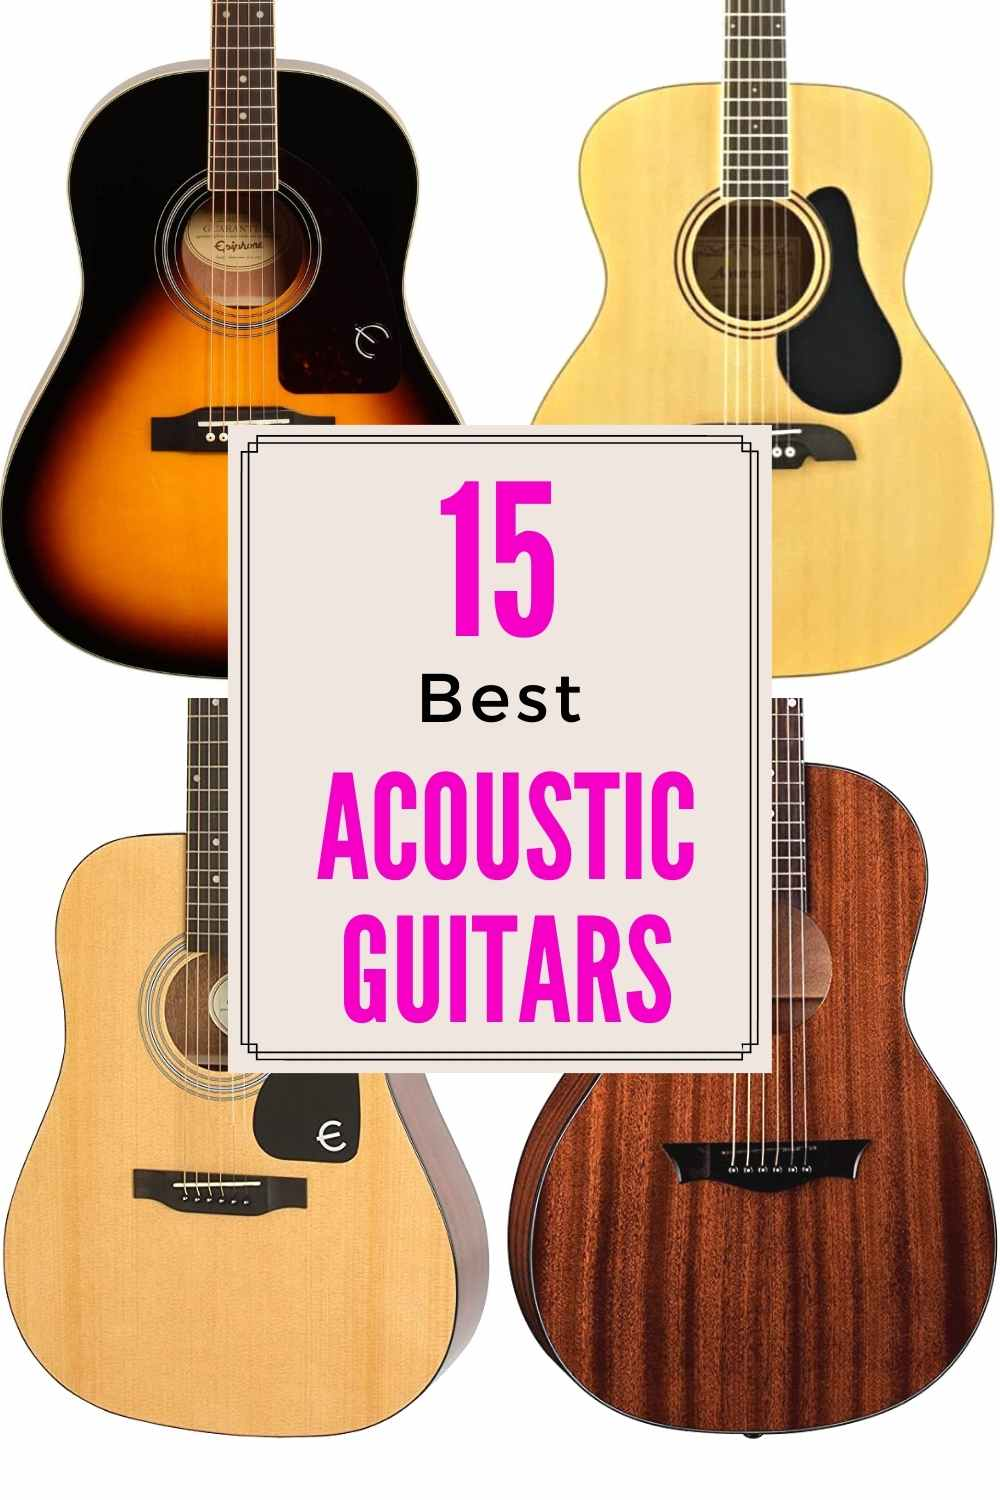 Best Acoustic guitars in the market today